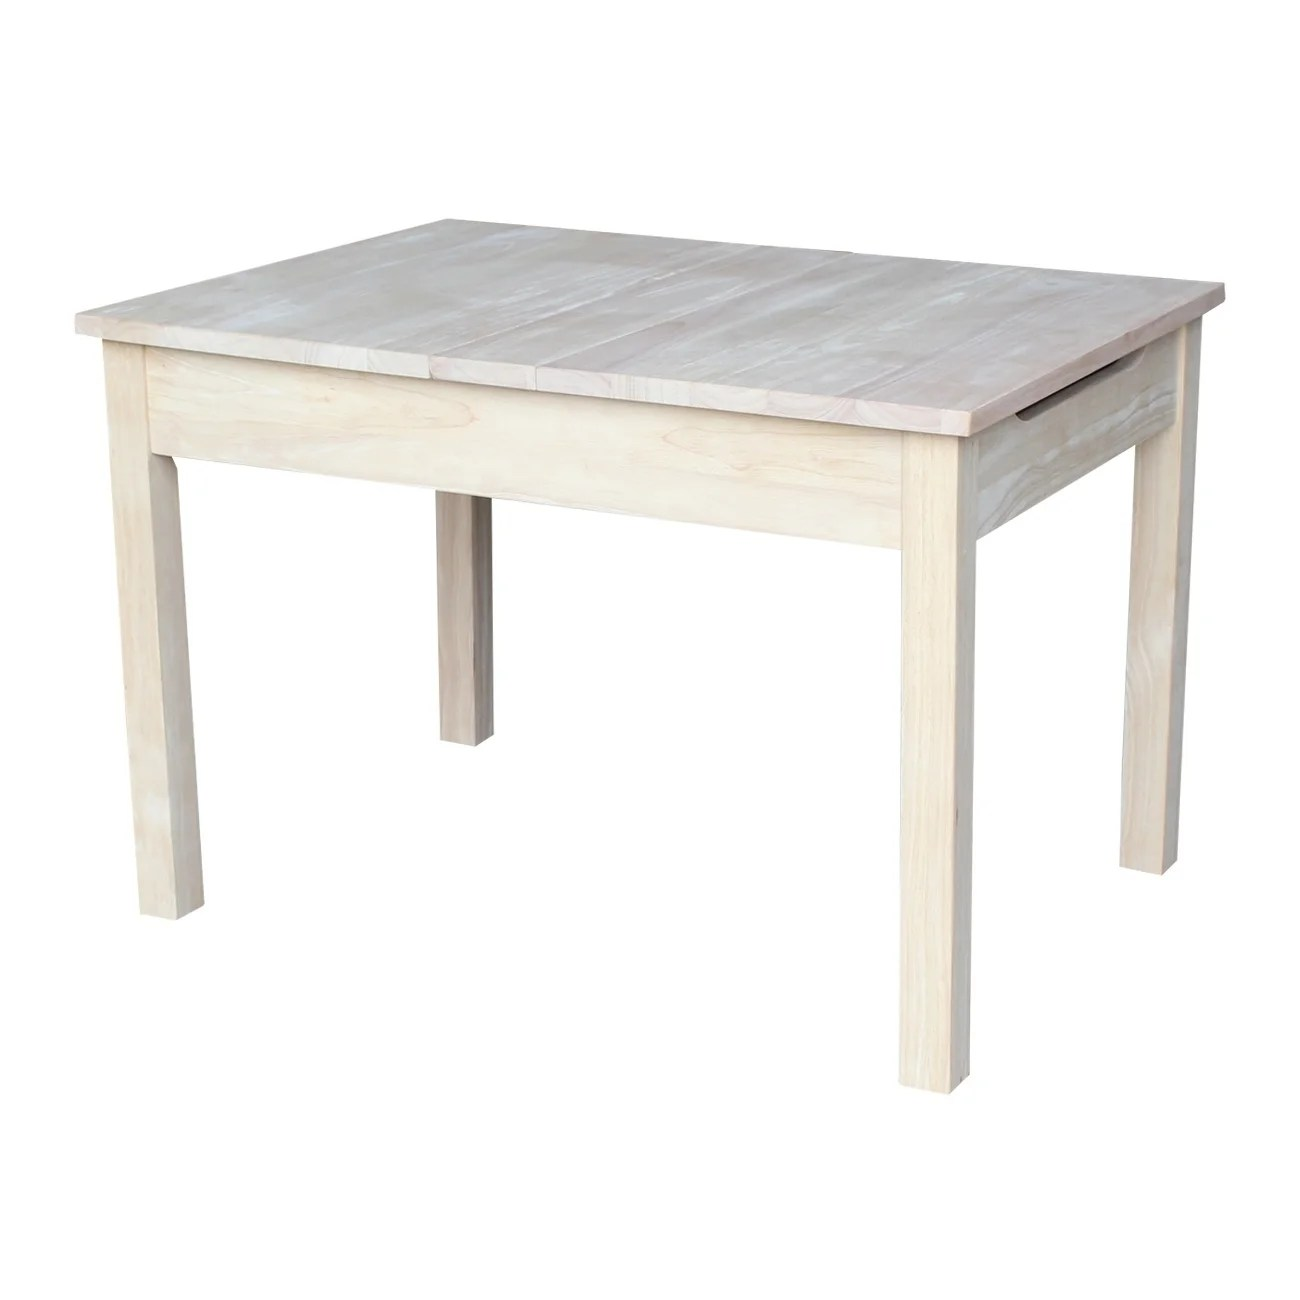 Children's Trestle Table Buy Kids Table Chair Sets Online At Overstock Our Best Kids